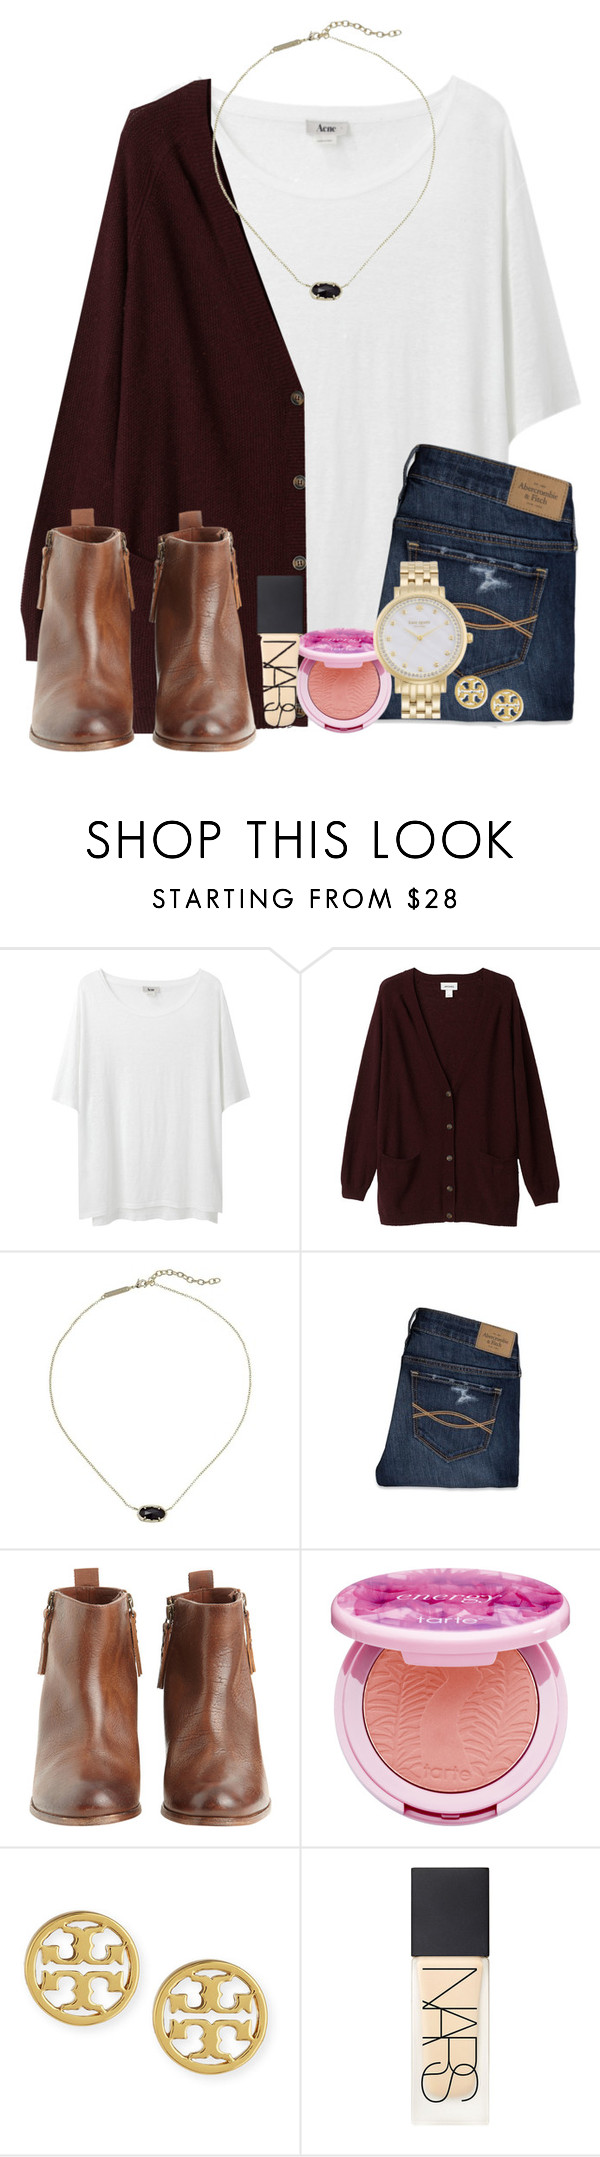 """""""~oh how wonderful life is when your in the world~"""" by ellaswiftie13 ❤ liked on Polyvore featuring Acne Studios, Monki, Kendra Scott, Abercrombie & Fitch, Hoss Intropia, tarte, Tory Burch, NARS Cosmetics and Kate Spade"""